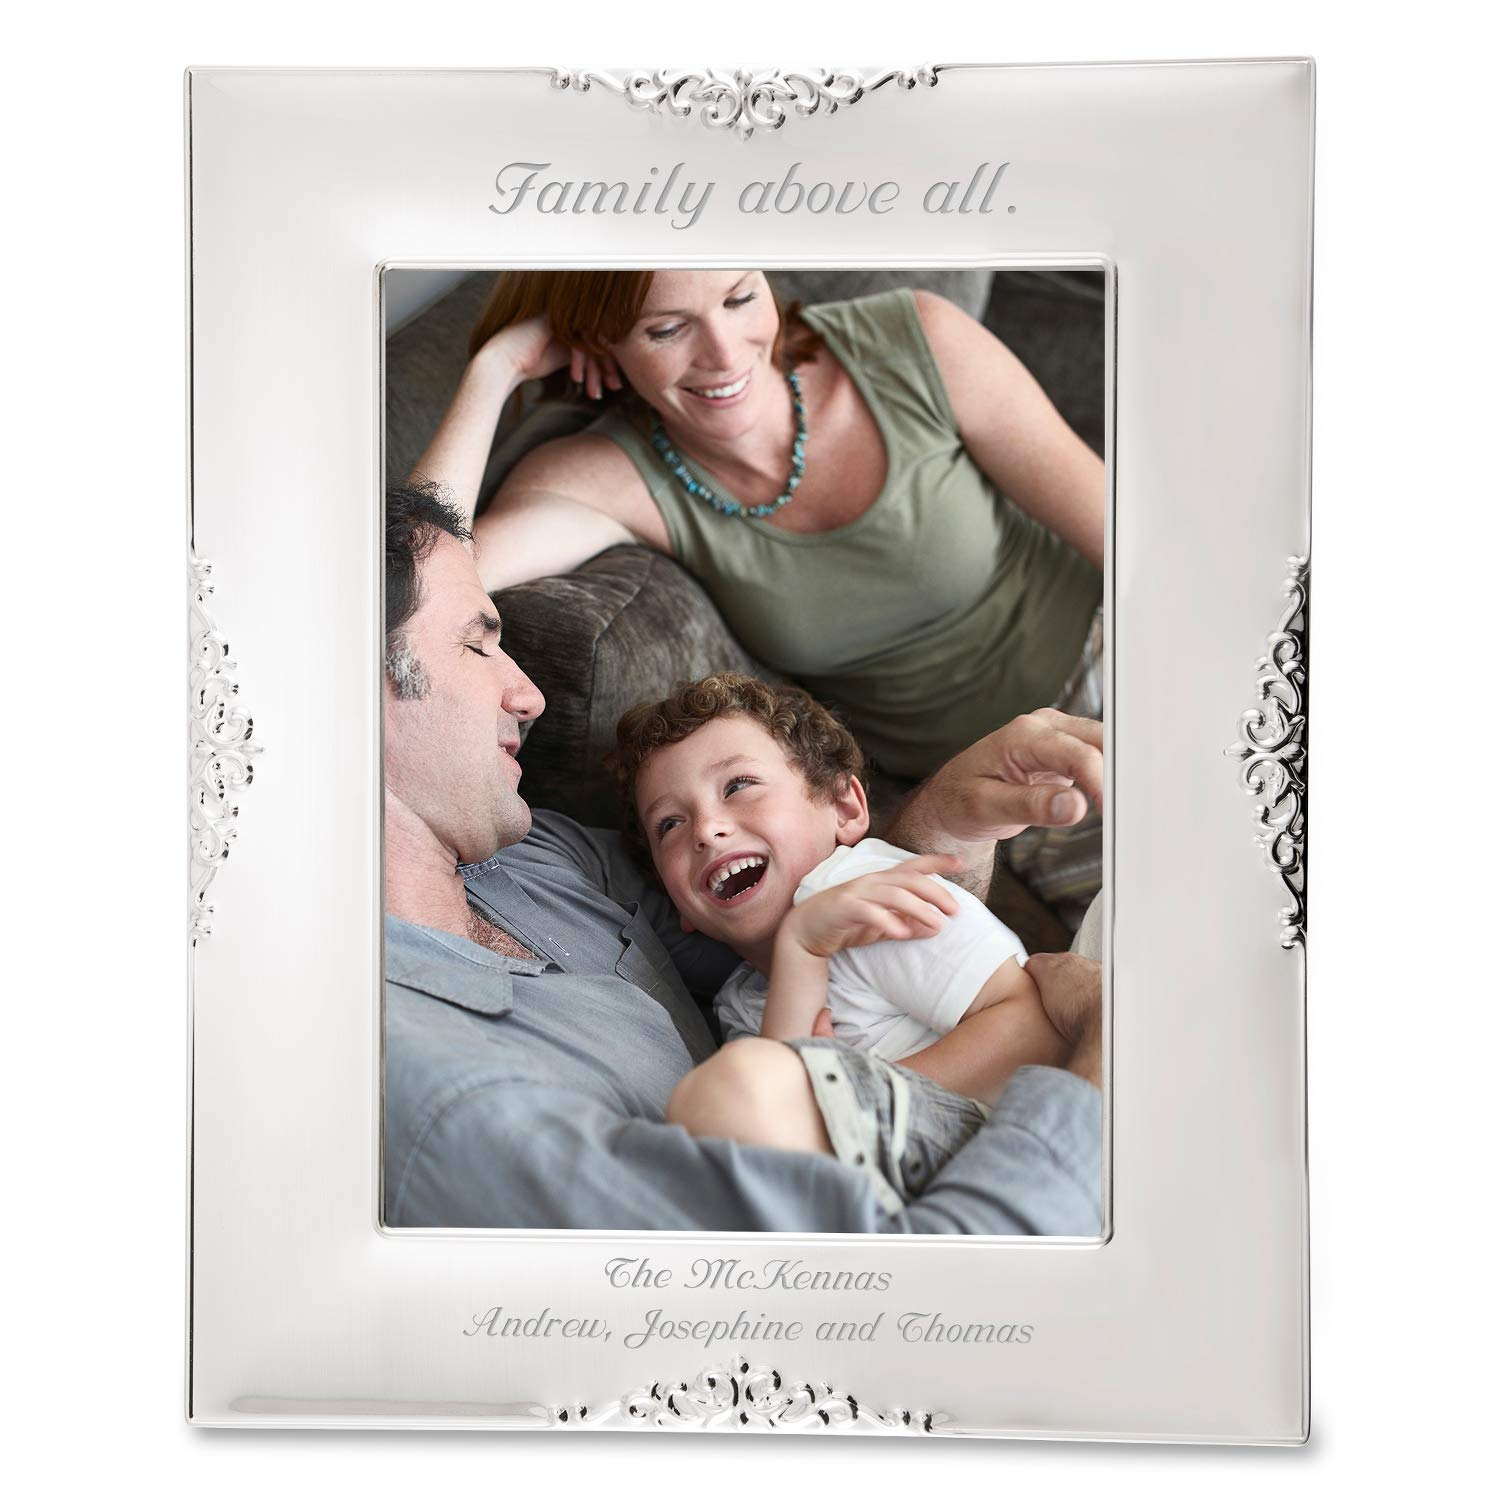 Things Remembered Personalized Heirloom Silver Picture Album with Engraving Included by Things Remembered (Image #2)